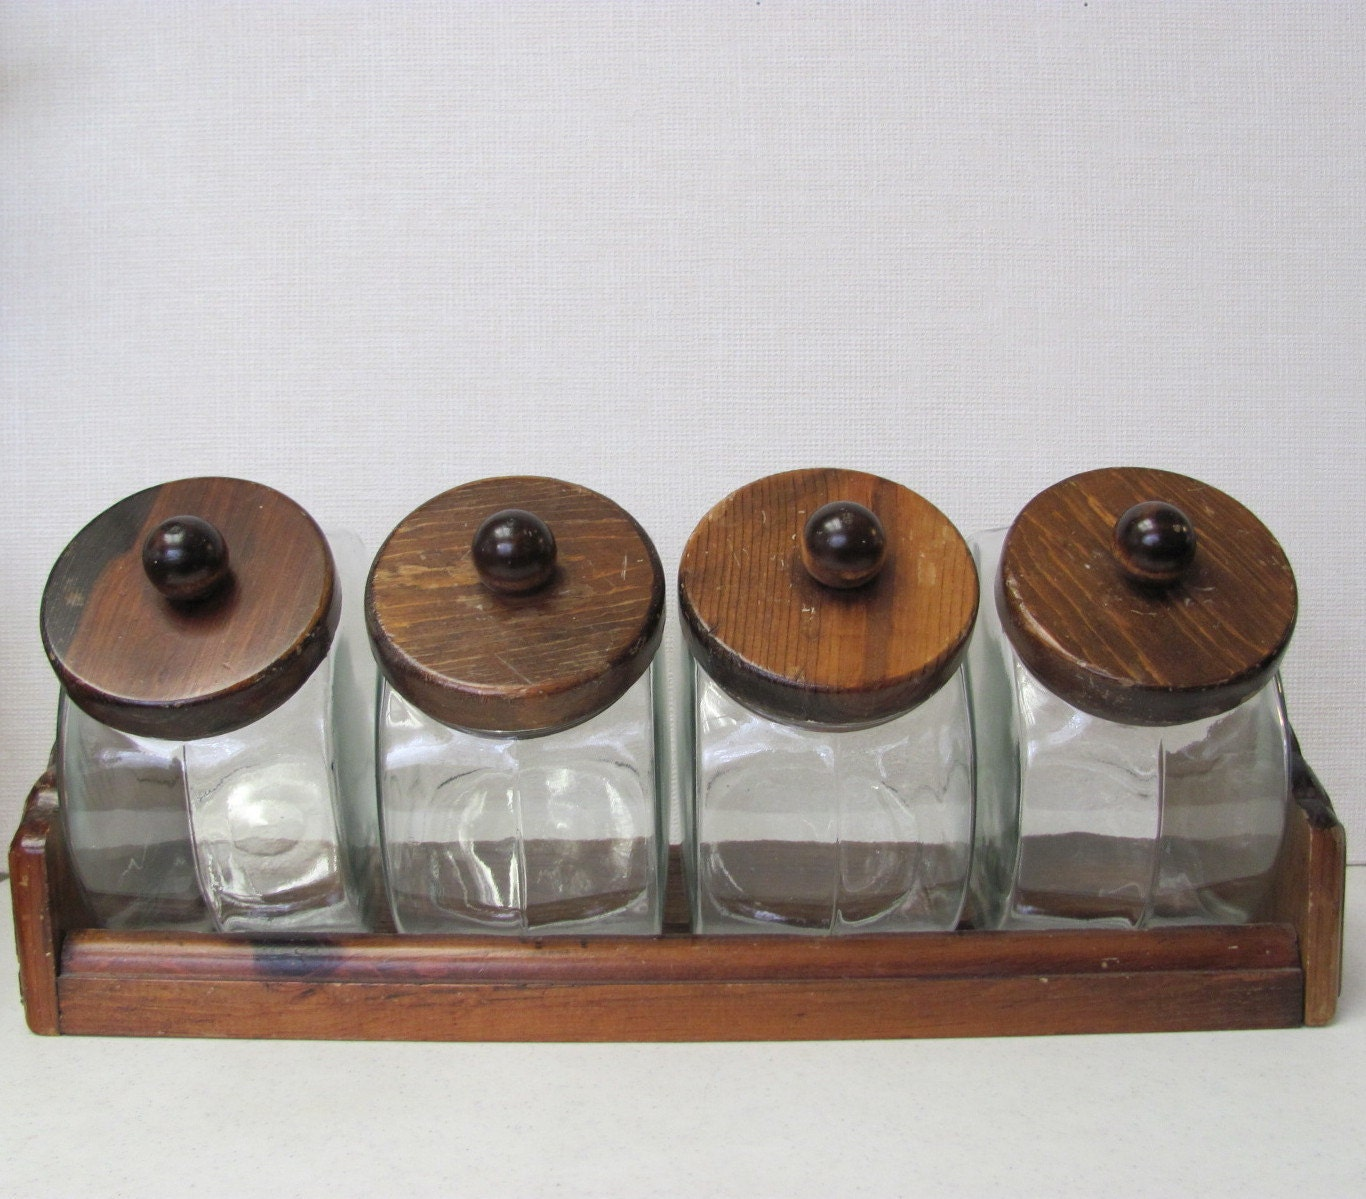 Rustic Kitchen Canisters Vintage General Store Style Glass Canister Set With Rack